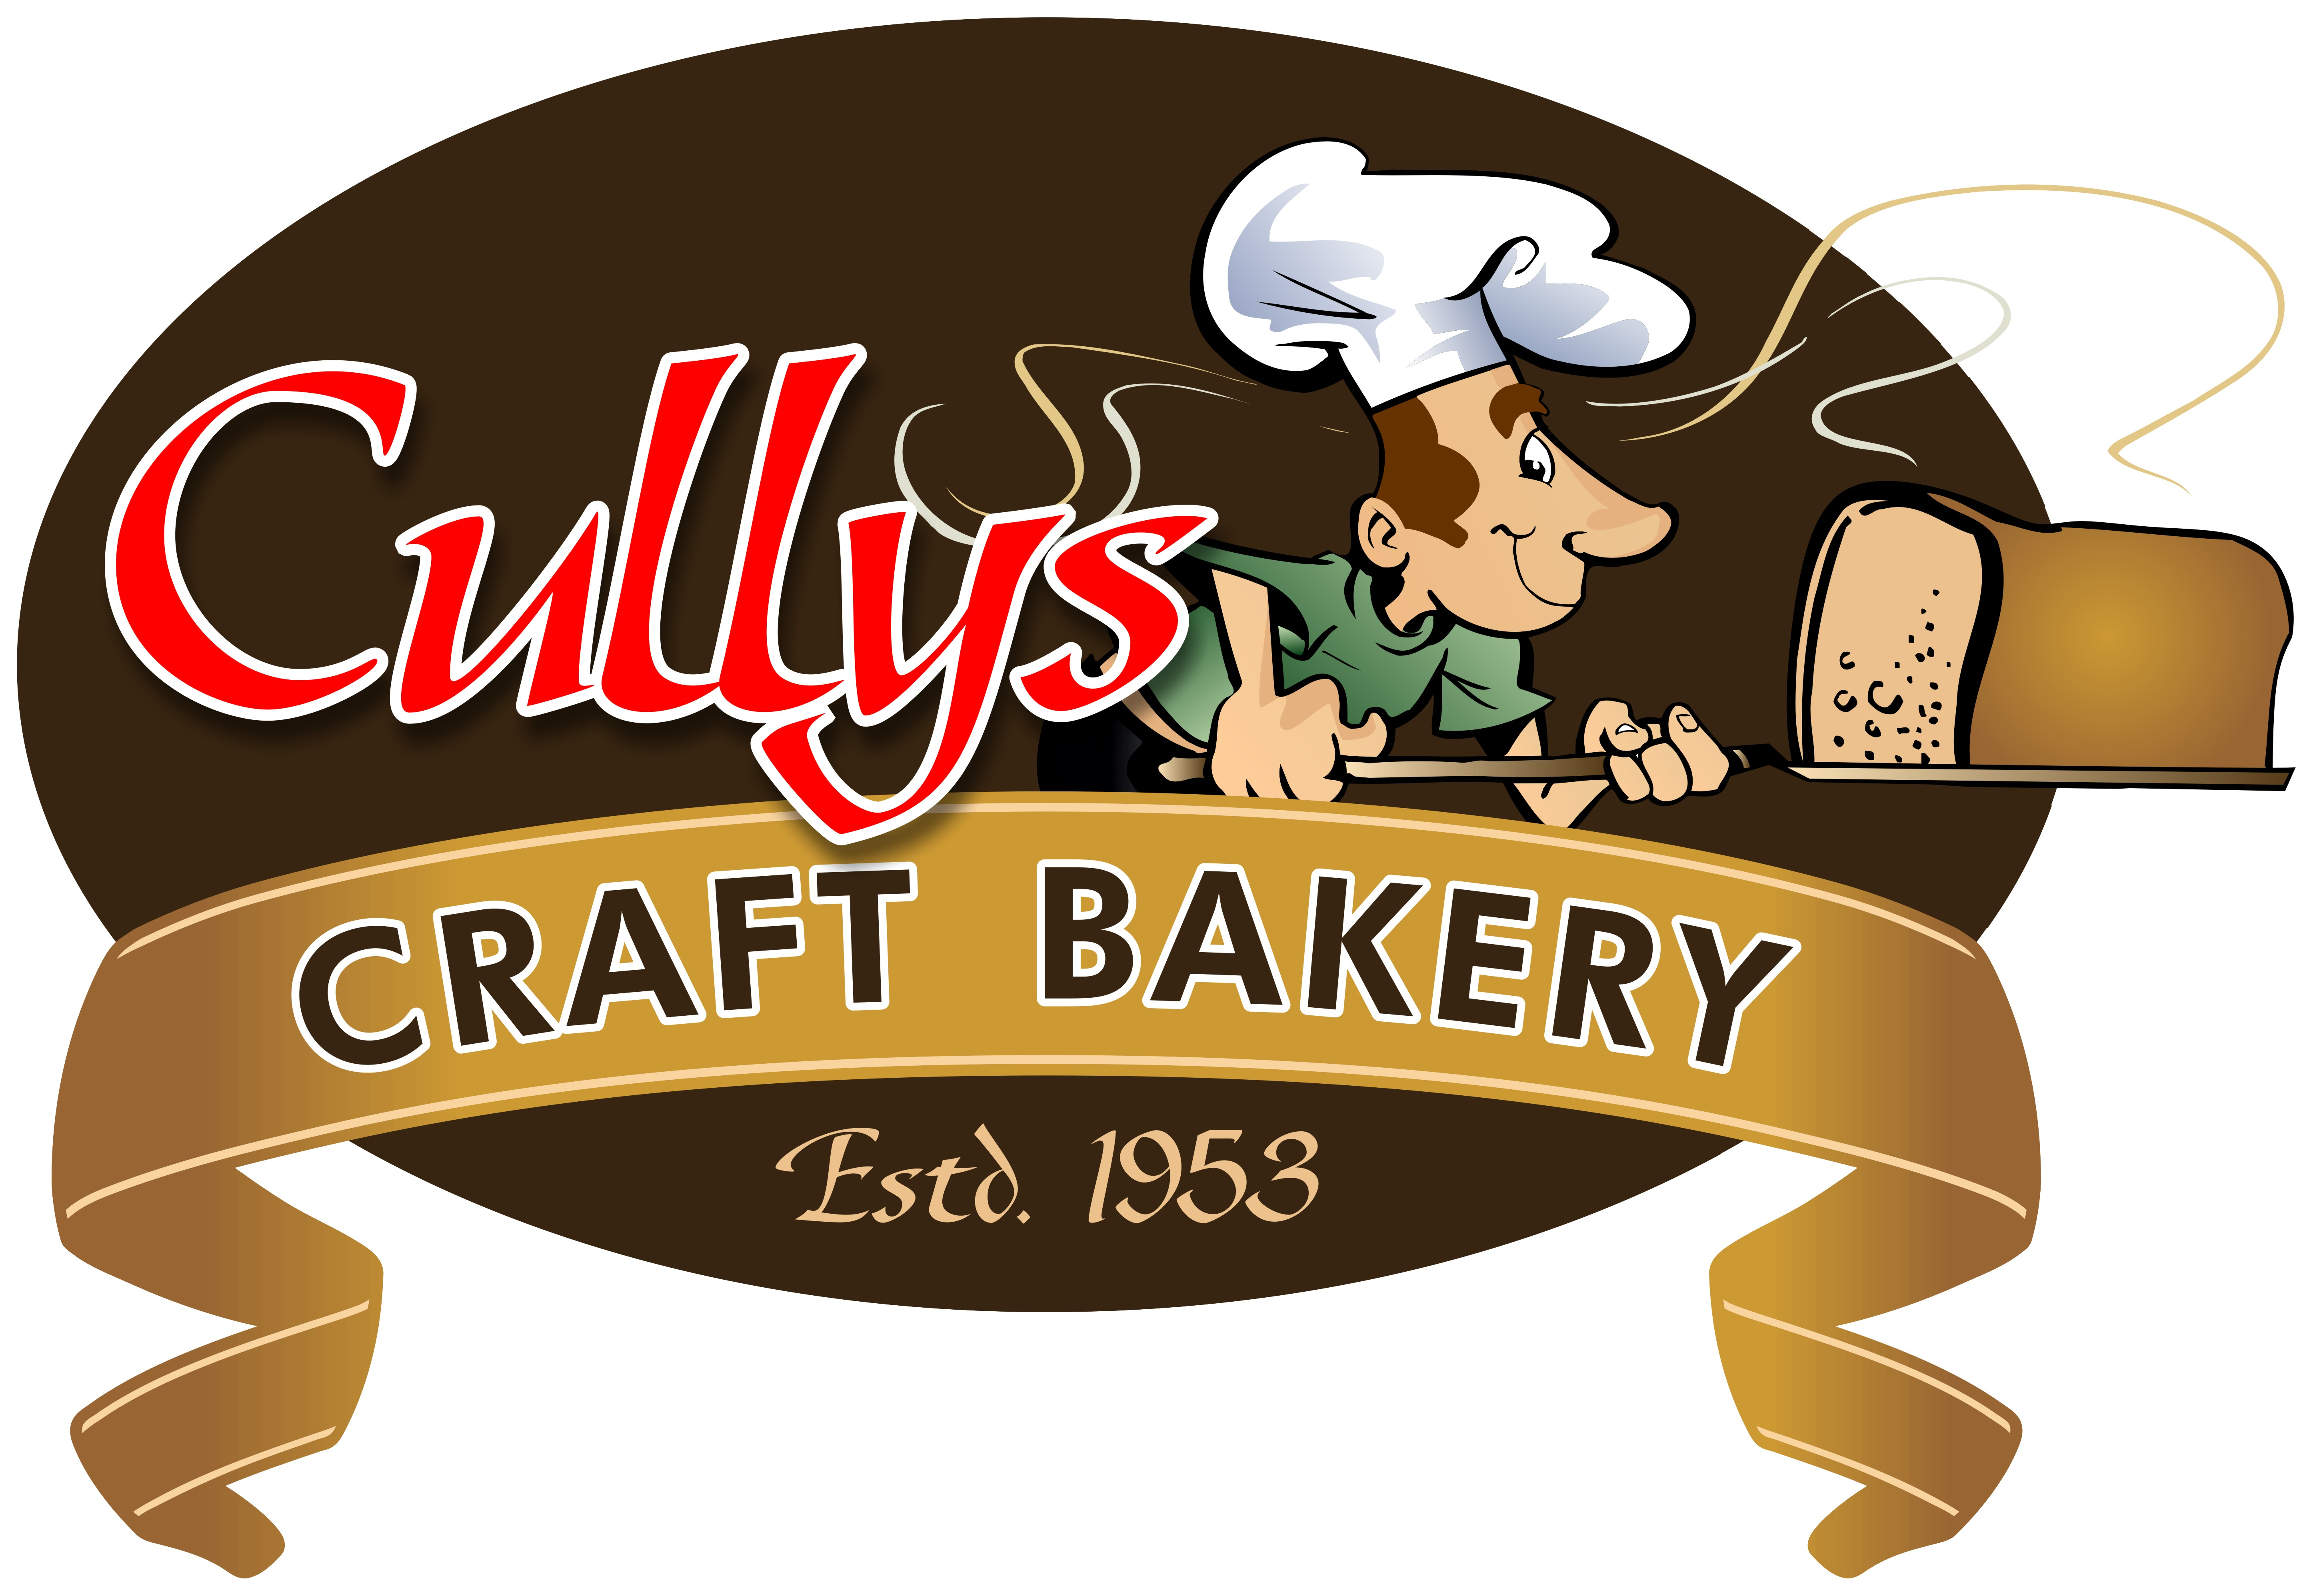 Cullys Craft Bakery